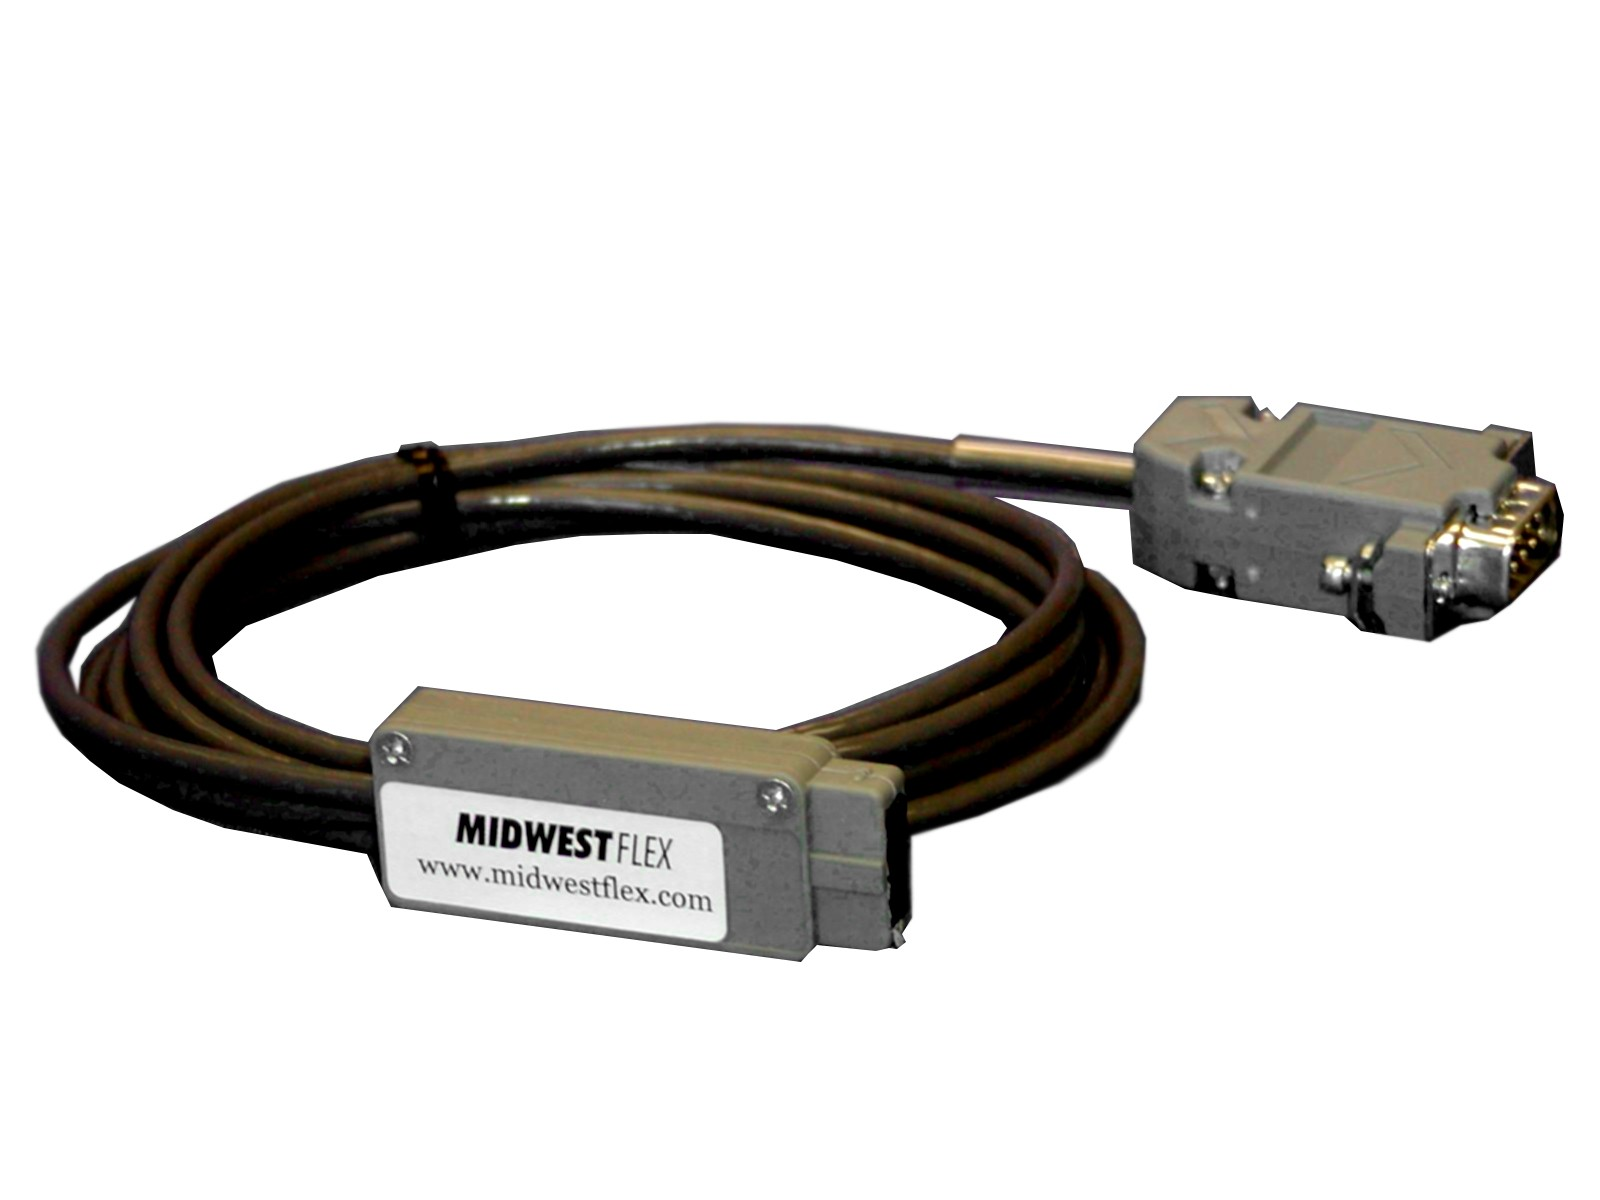 C-96511-06 FlexConnect Boeckeler Microcode II DRO to Digimatic output (6 ft)